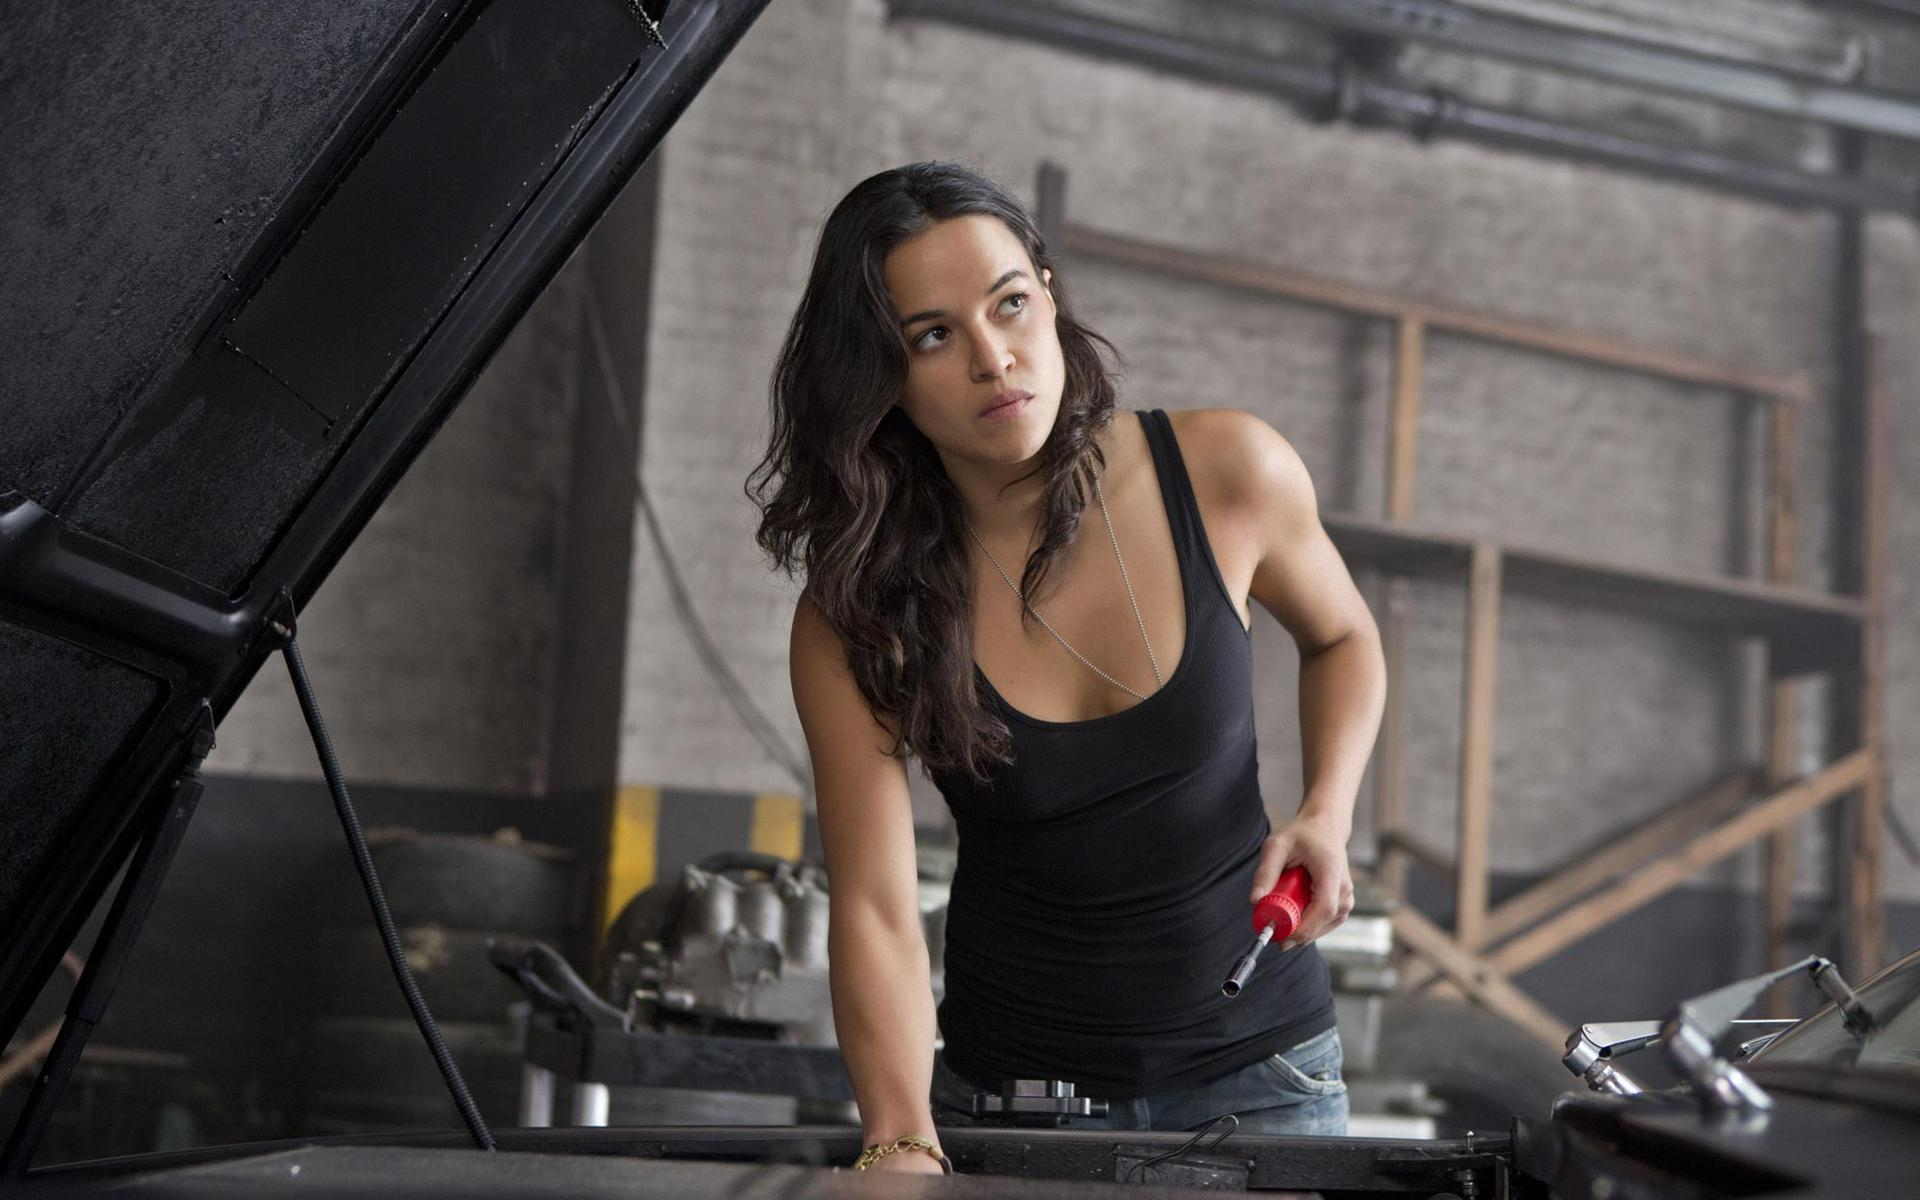 fast-and-furious-michelle-rodriguez.jpg